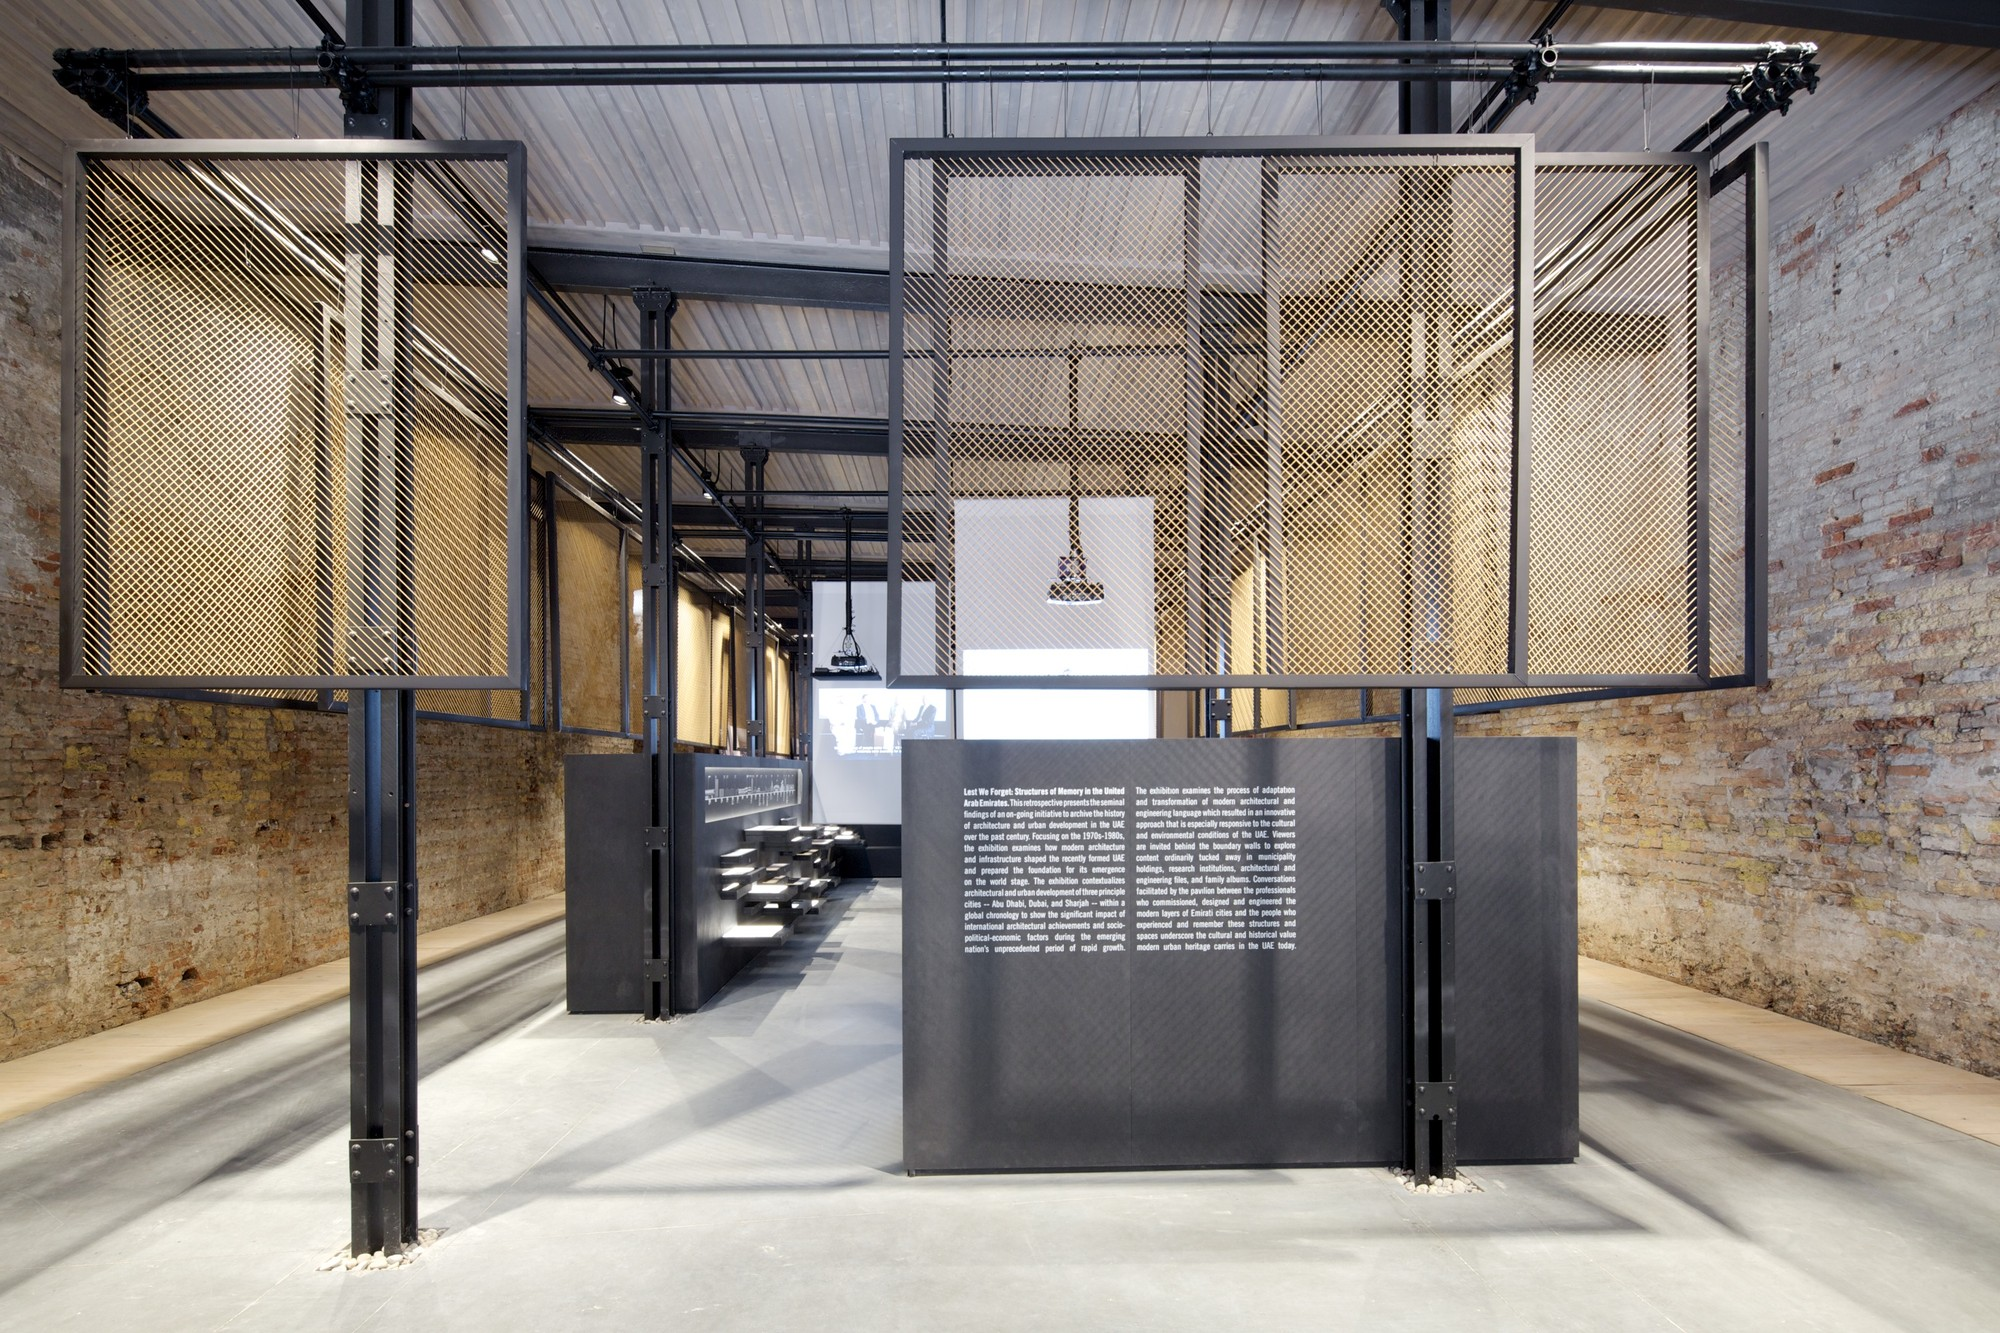 """Lest We Forget"" - UAE's Pavilion at the Venice Biennale 2014, © Nico Saieh"